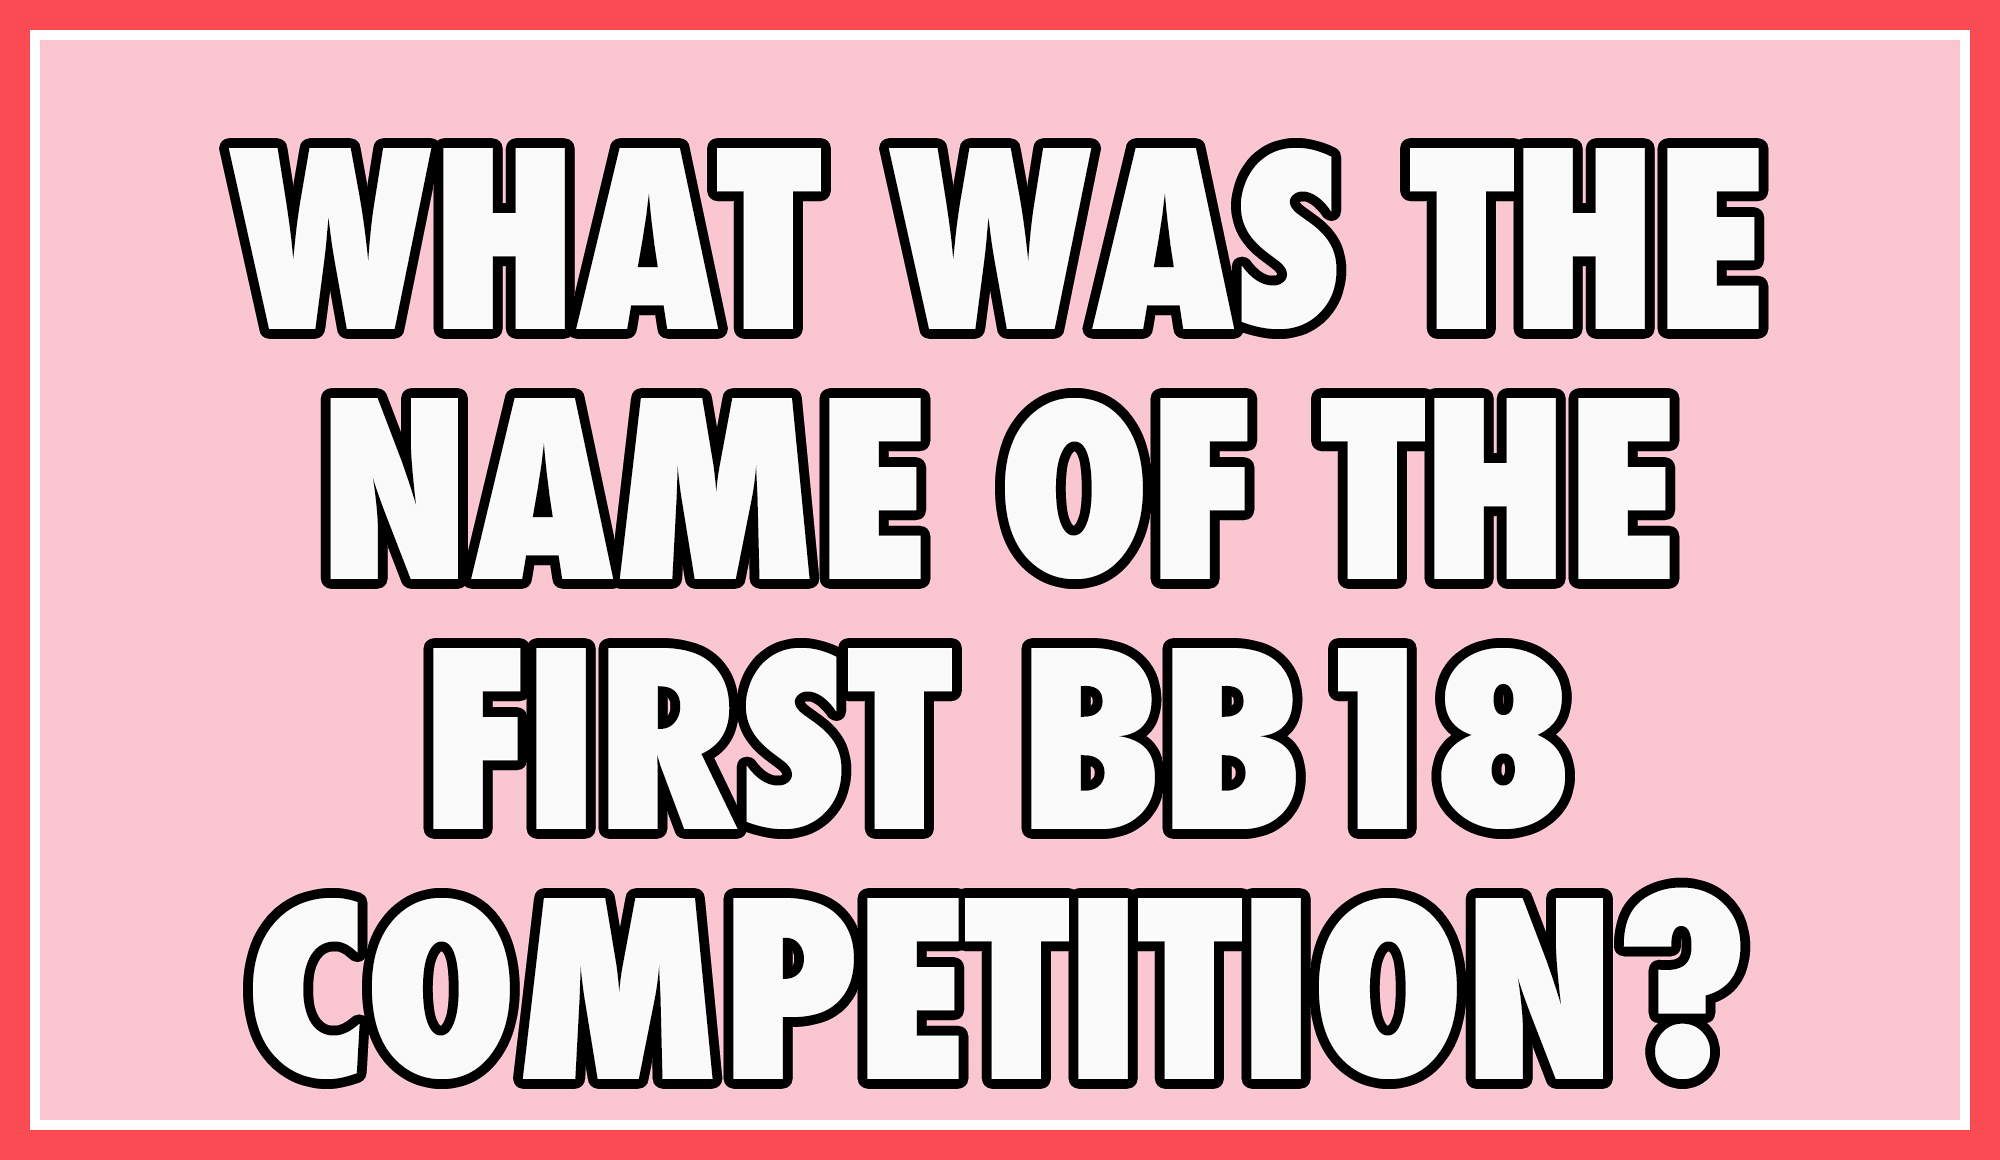 What was the name of the first BB18 competition?